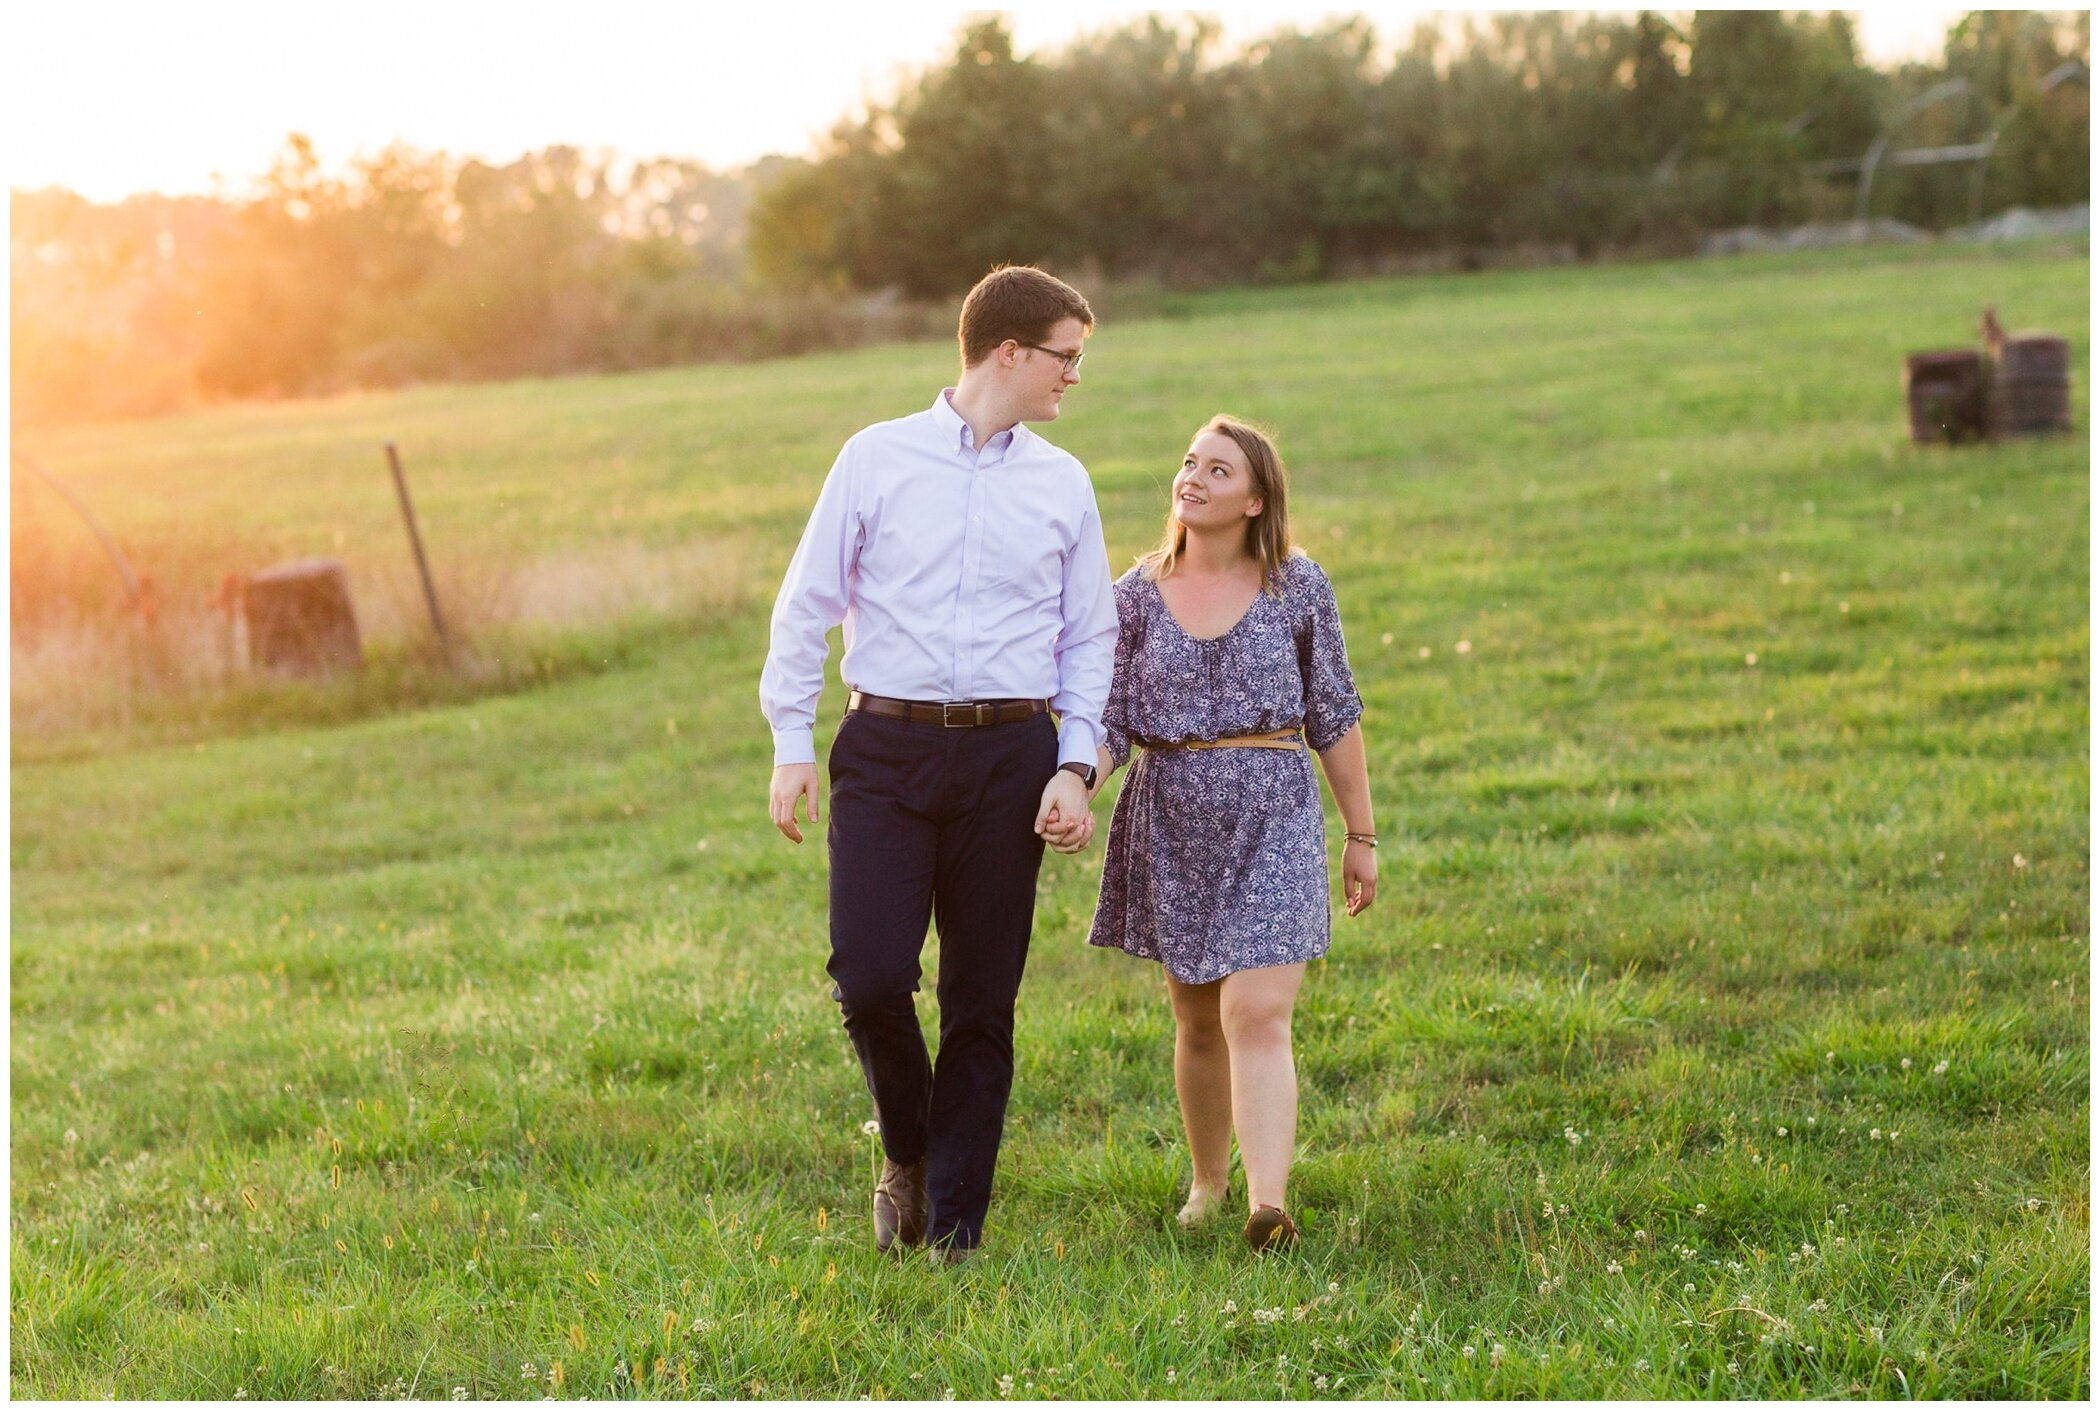 Fall family photos at Andre Viette Nursery in Fishersville VA featuring a german shepherd puppy